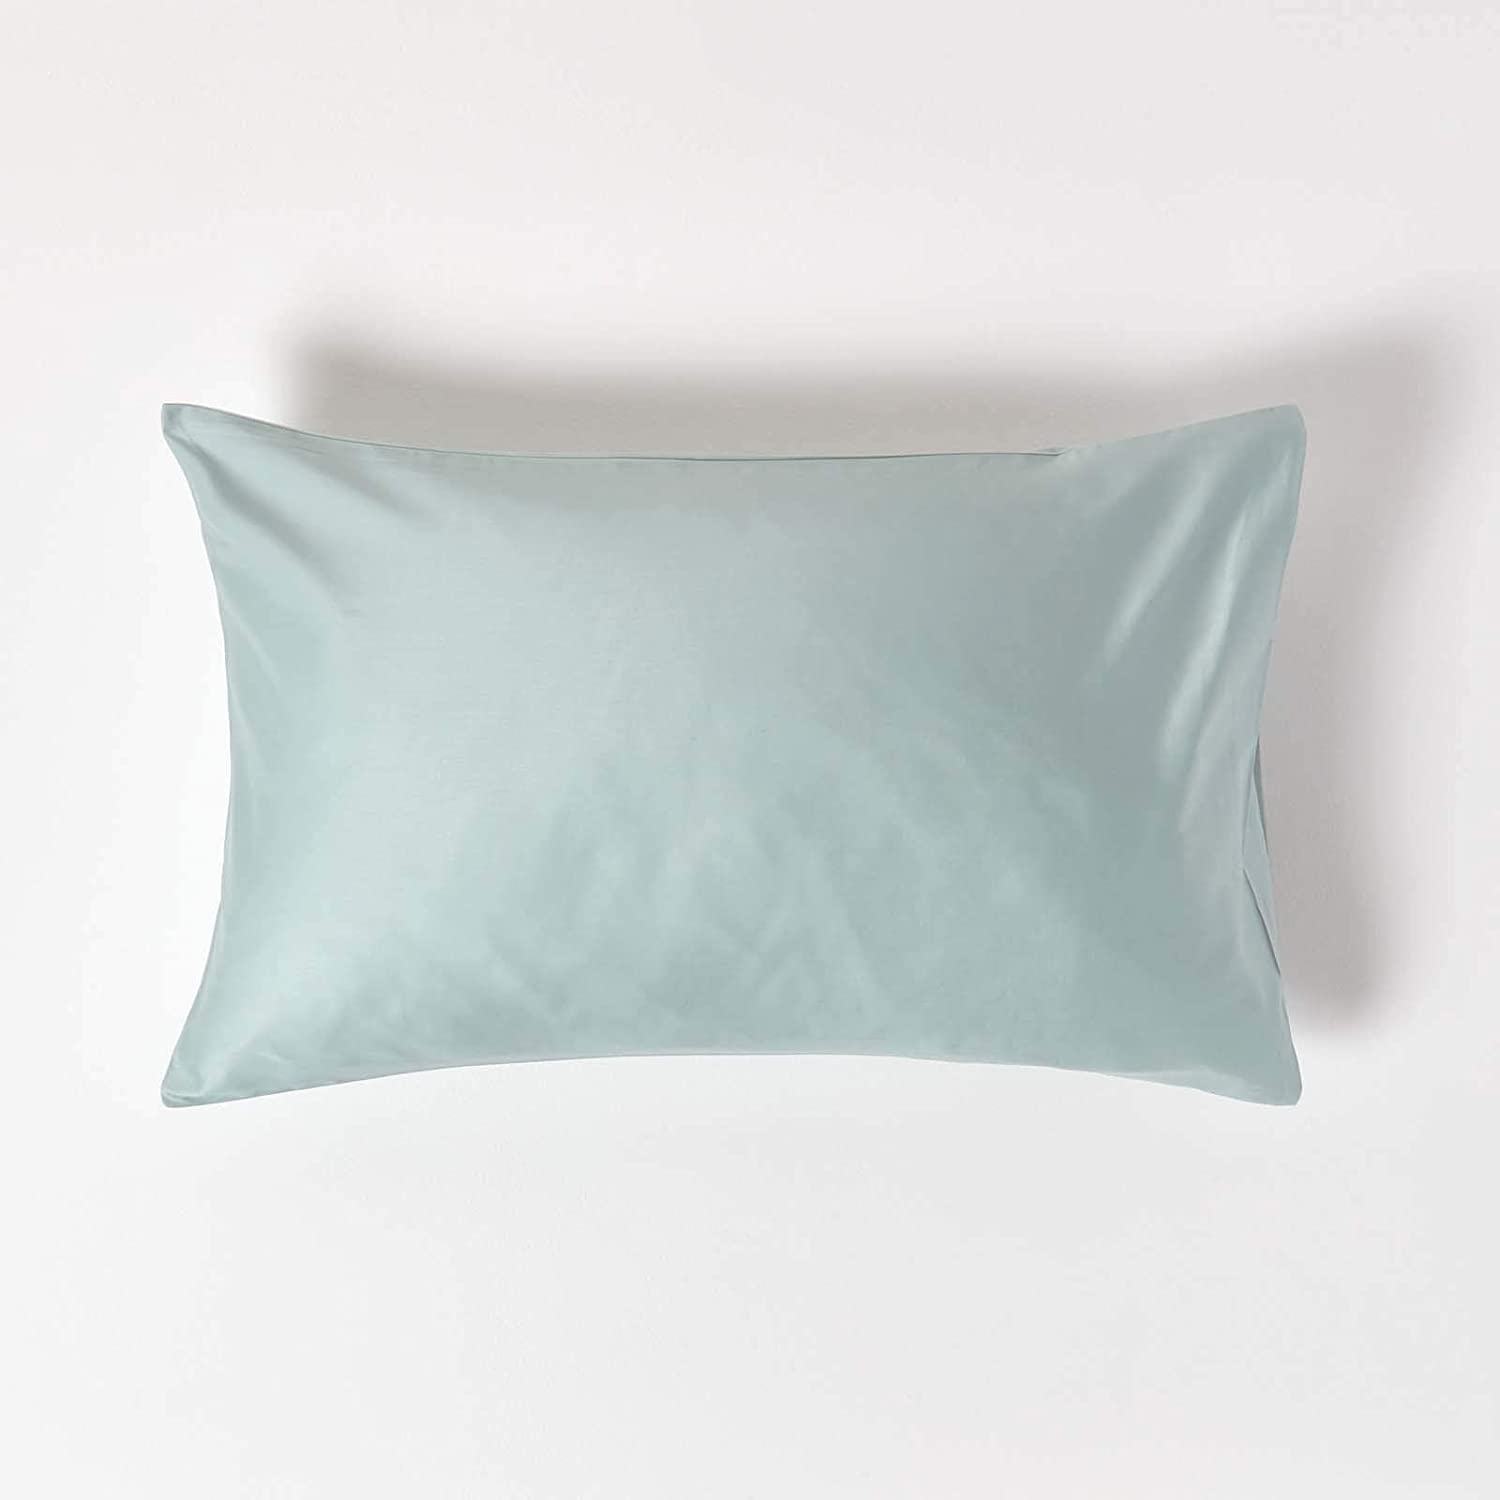 HOMESCAPES Duck Egg Blue Organic Cotton Pillowcase Standard Size 400TC 600 Thread Count Percale Equivalent Housewife Pillow Case